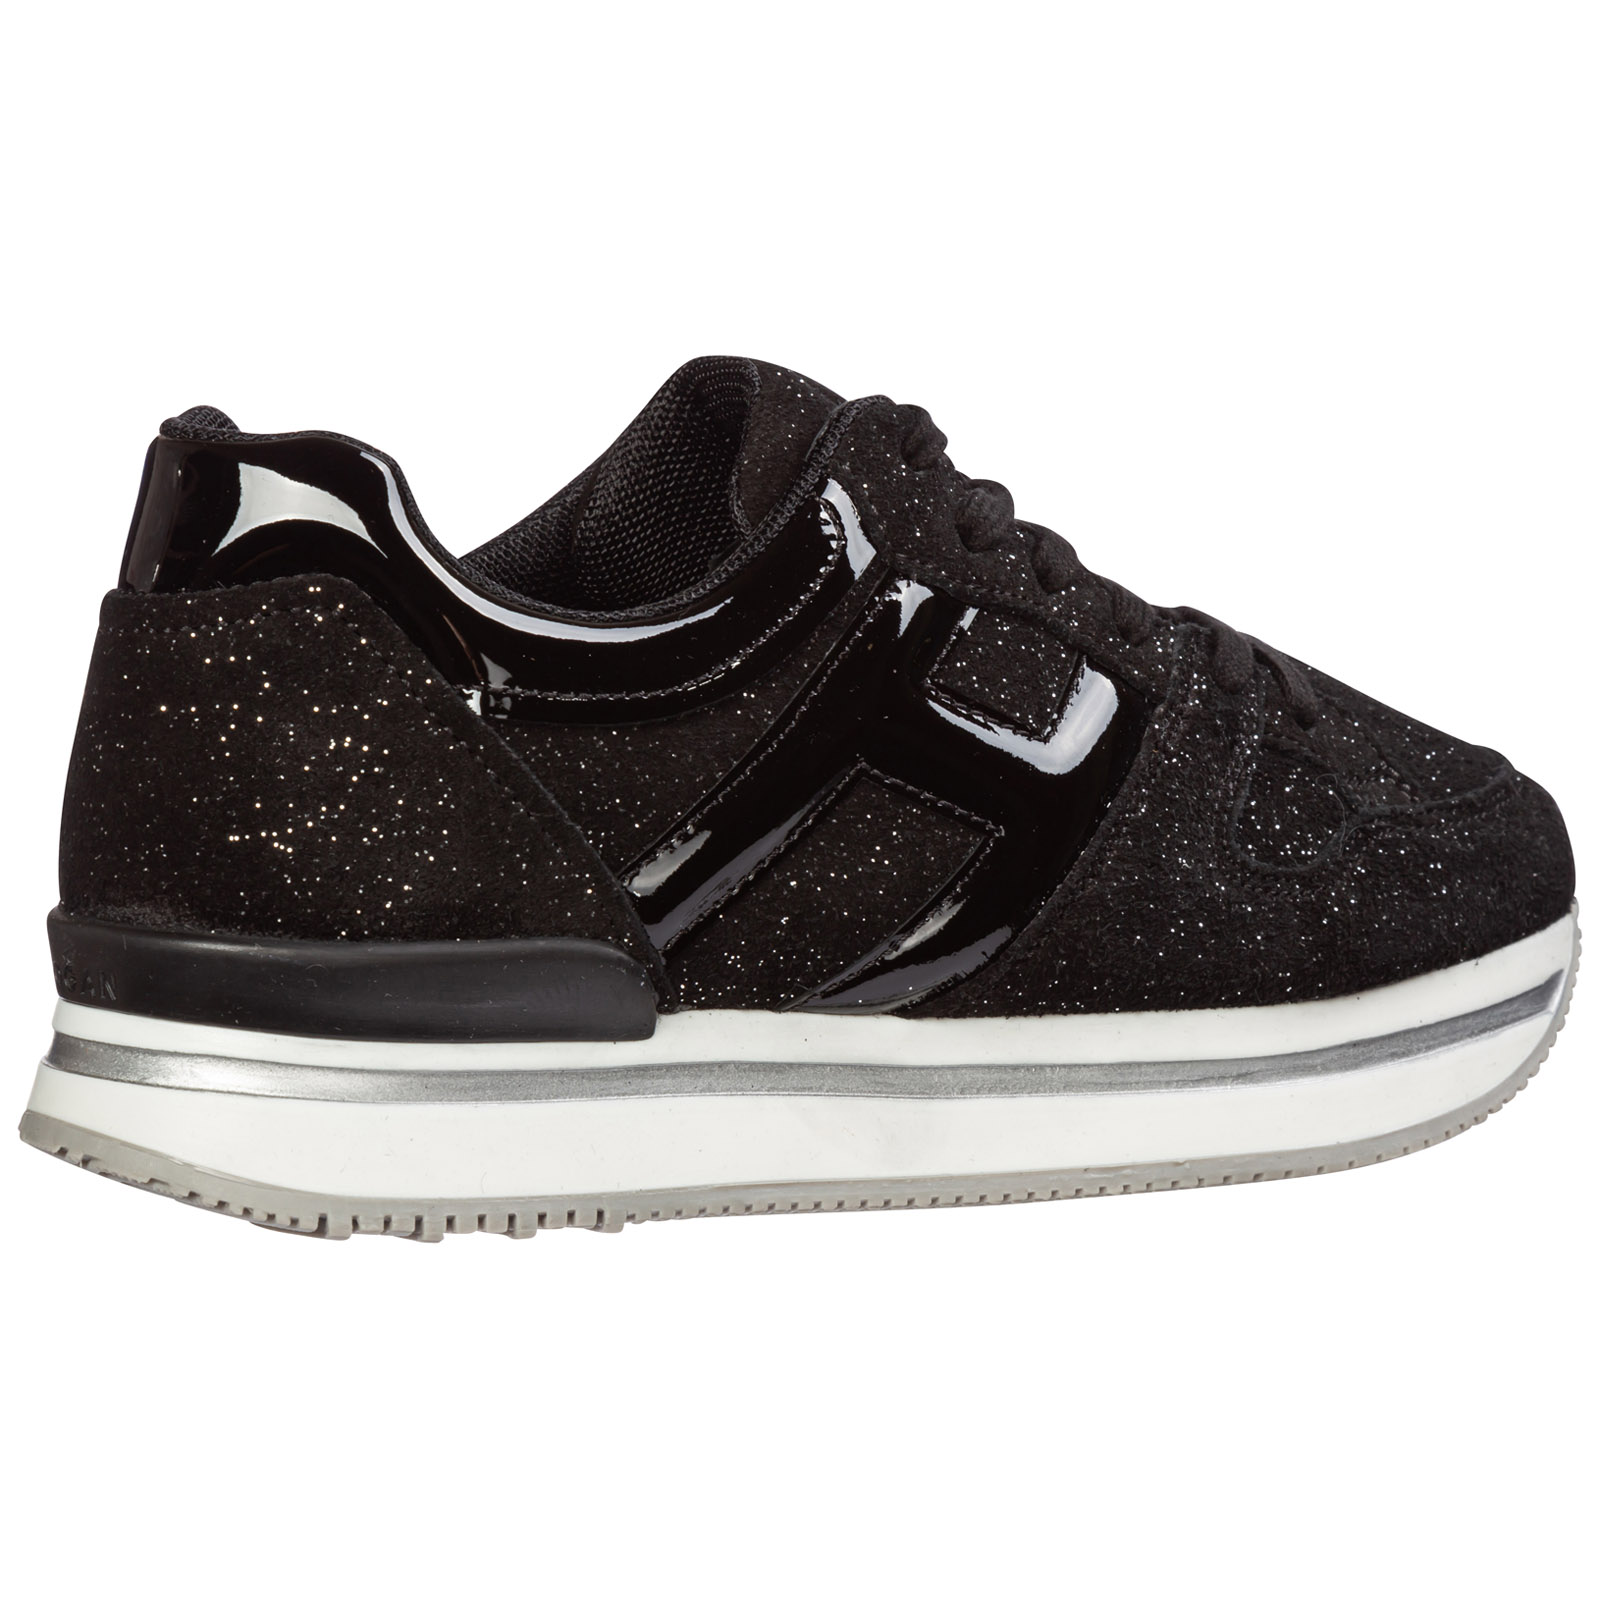 Girls shoes child suede leather sneakers h222